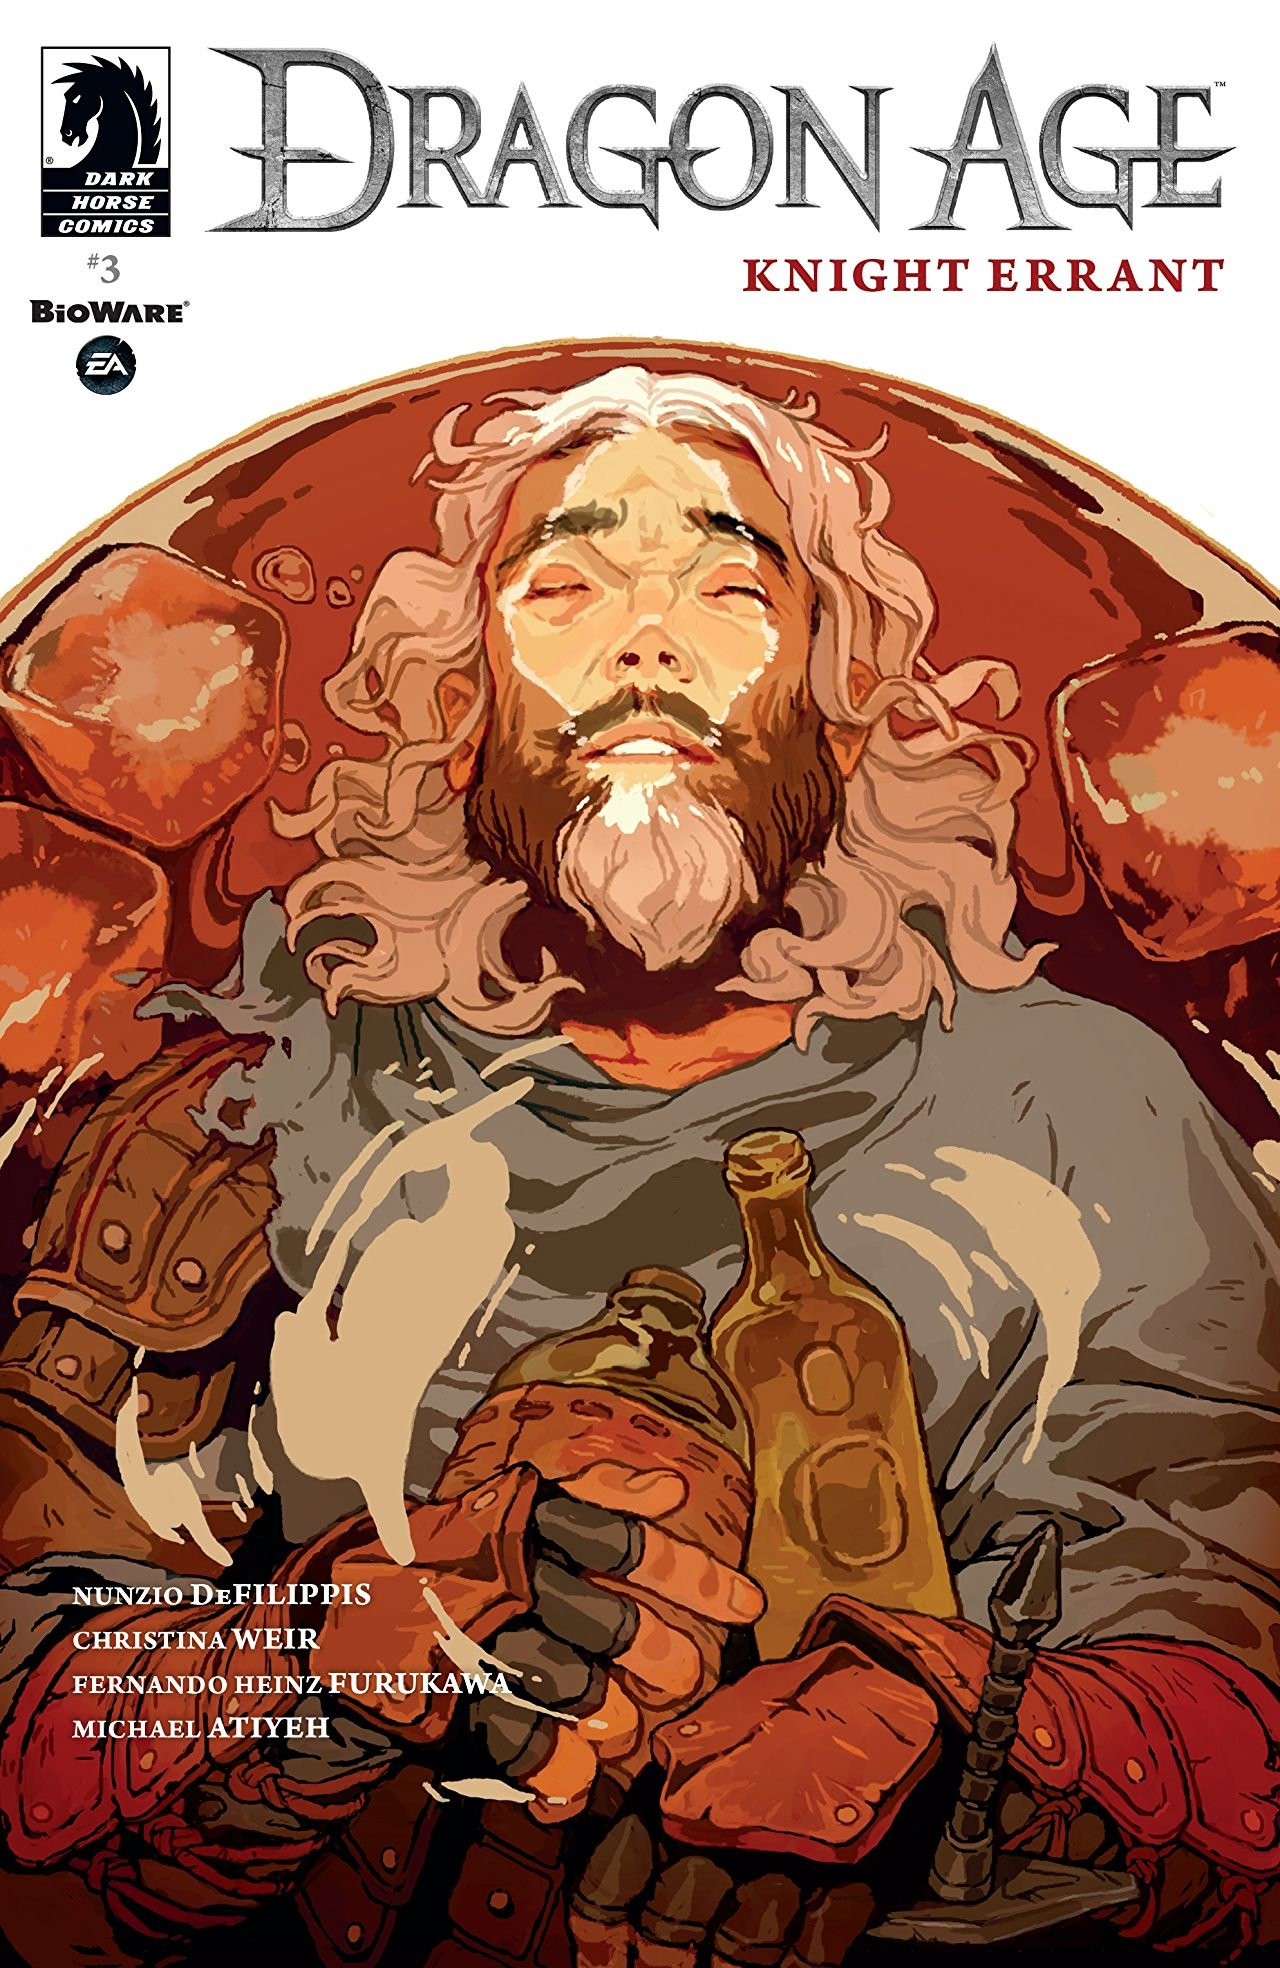 Dragon Age: Knight Errant Revie - comicbuzz | ello